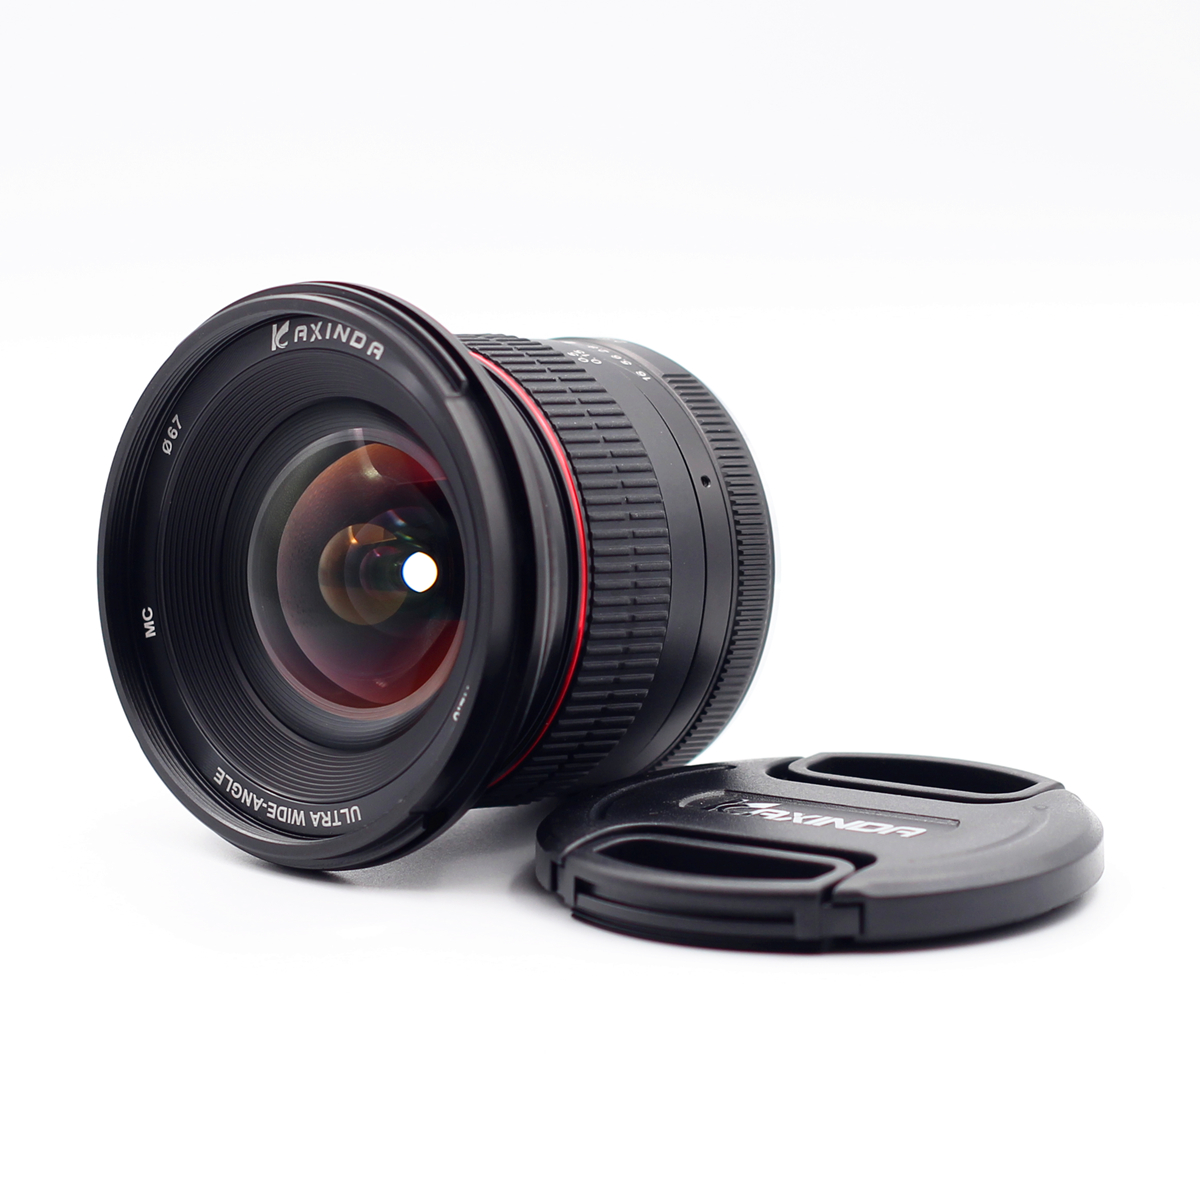 Kaxinda 12mm F/2.8 Wide Angle Manual Prime Lens For Sony Fujifilm Canon Olympus Panasonic Mirrorless Camera